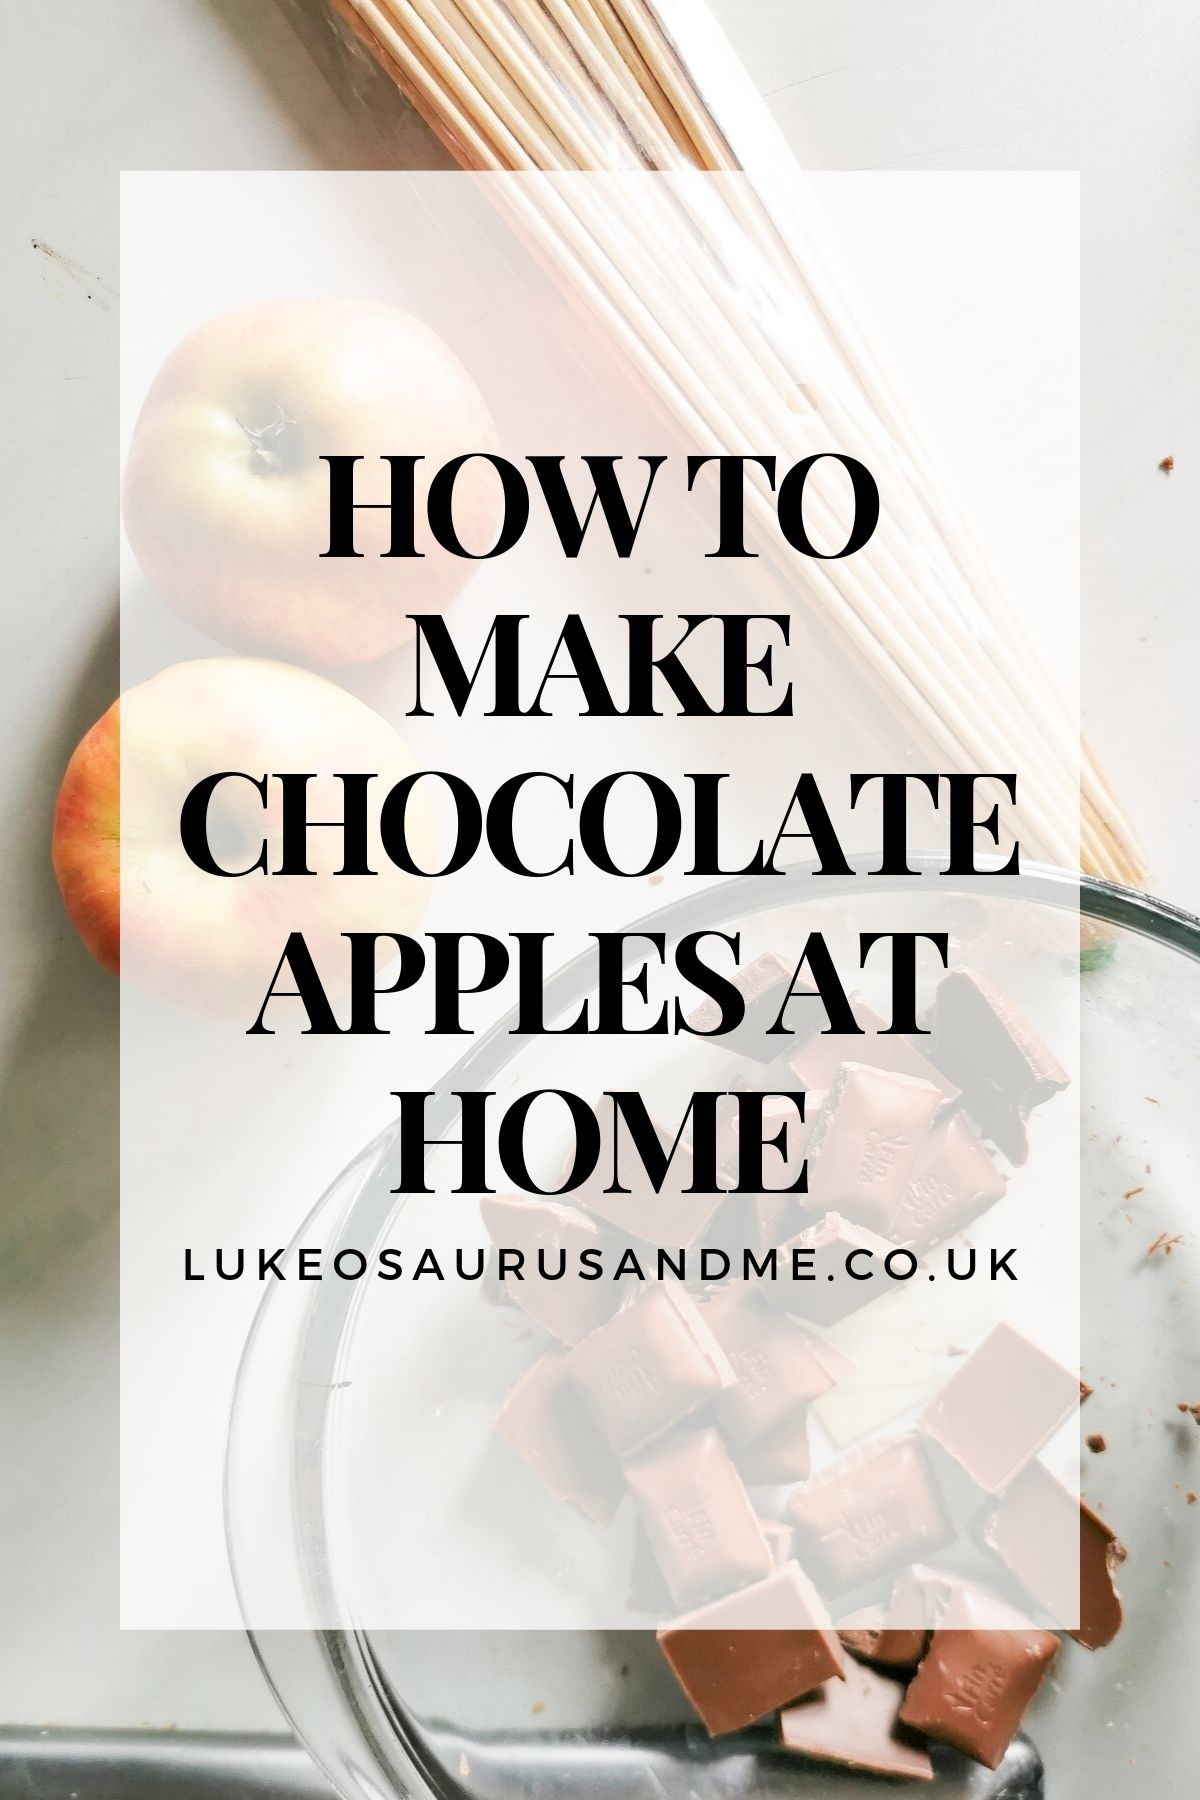 A faint image of apples, wooden skewers and broken chocolate sit behind text saying 'how to make chocolate apples at home'.